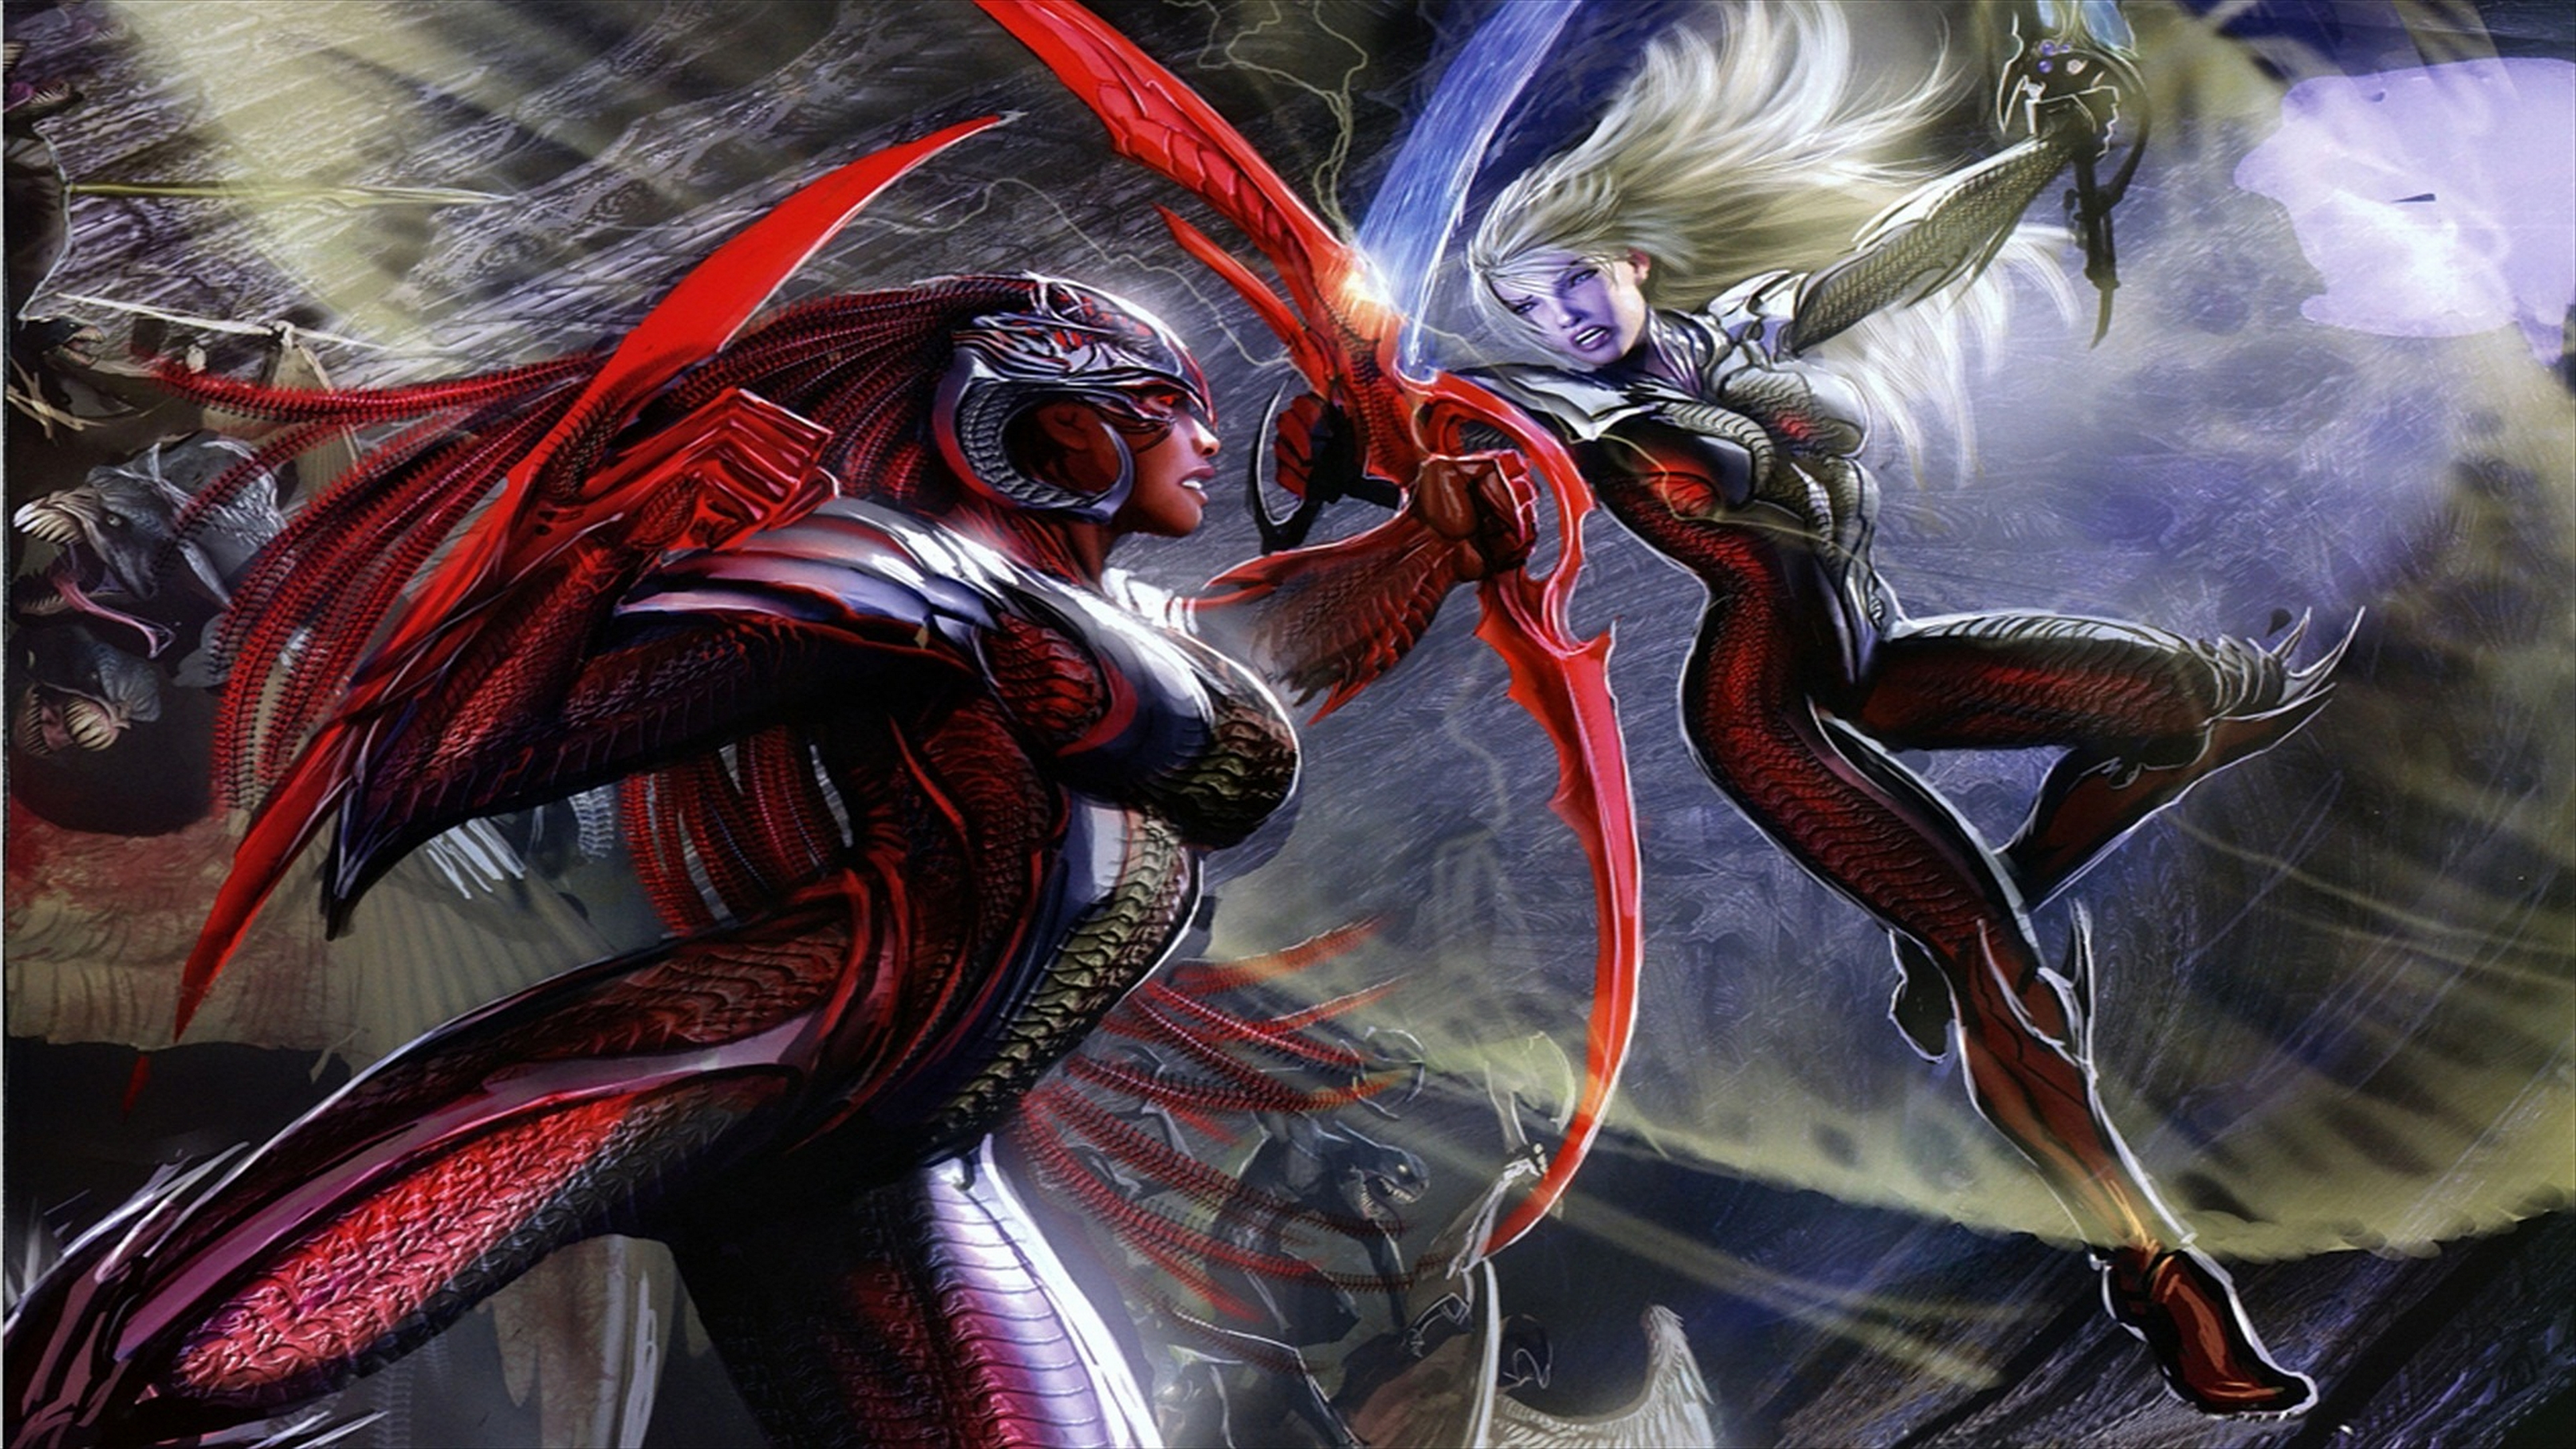 Comics - Witchblade  - Witch - Fight - Dark - Action - Latex - Gothic Wallpaper